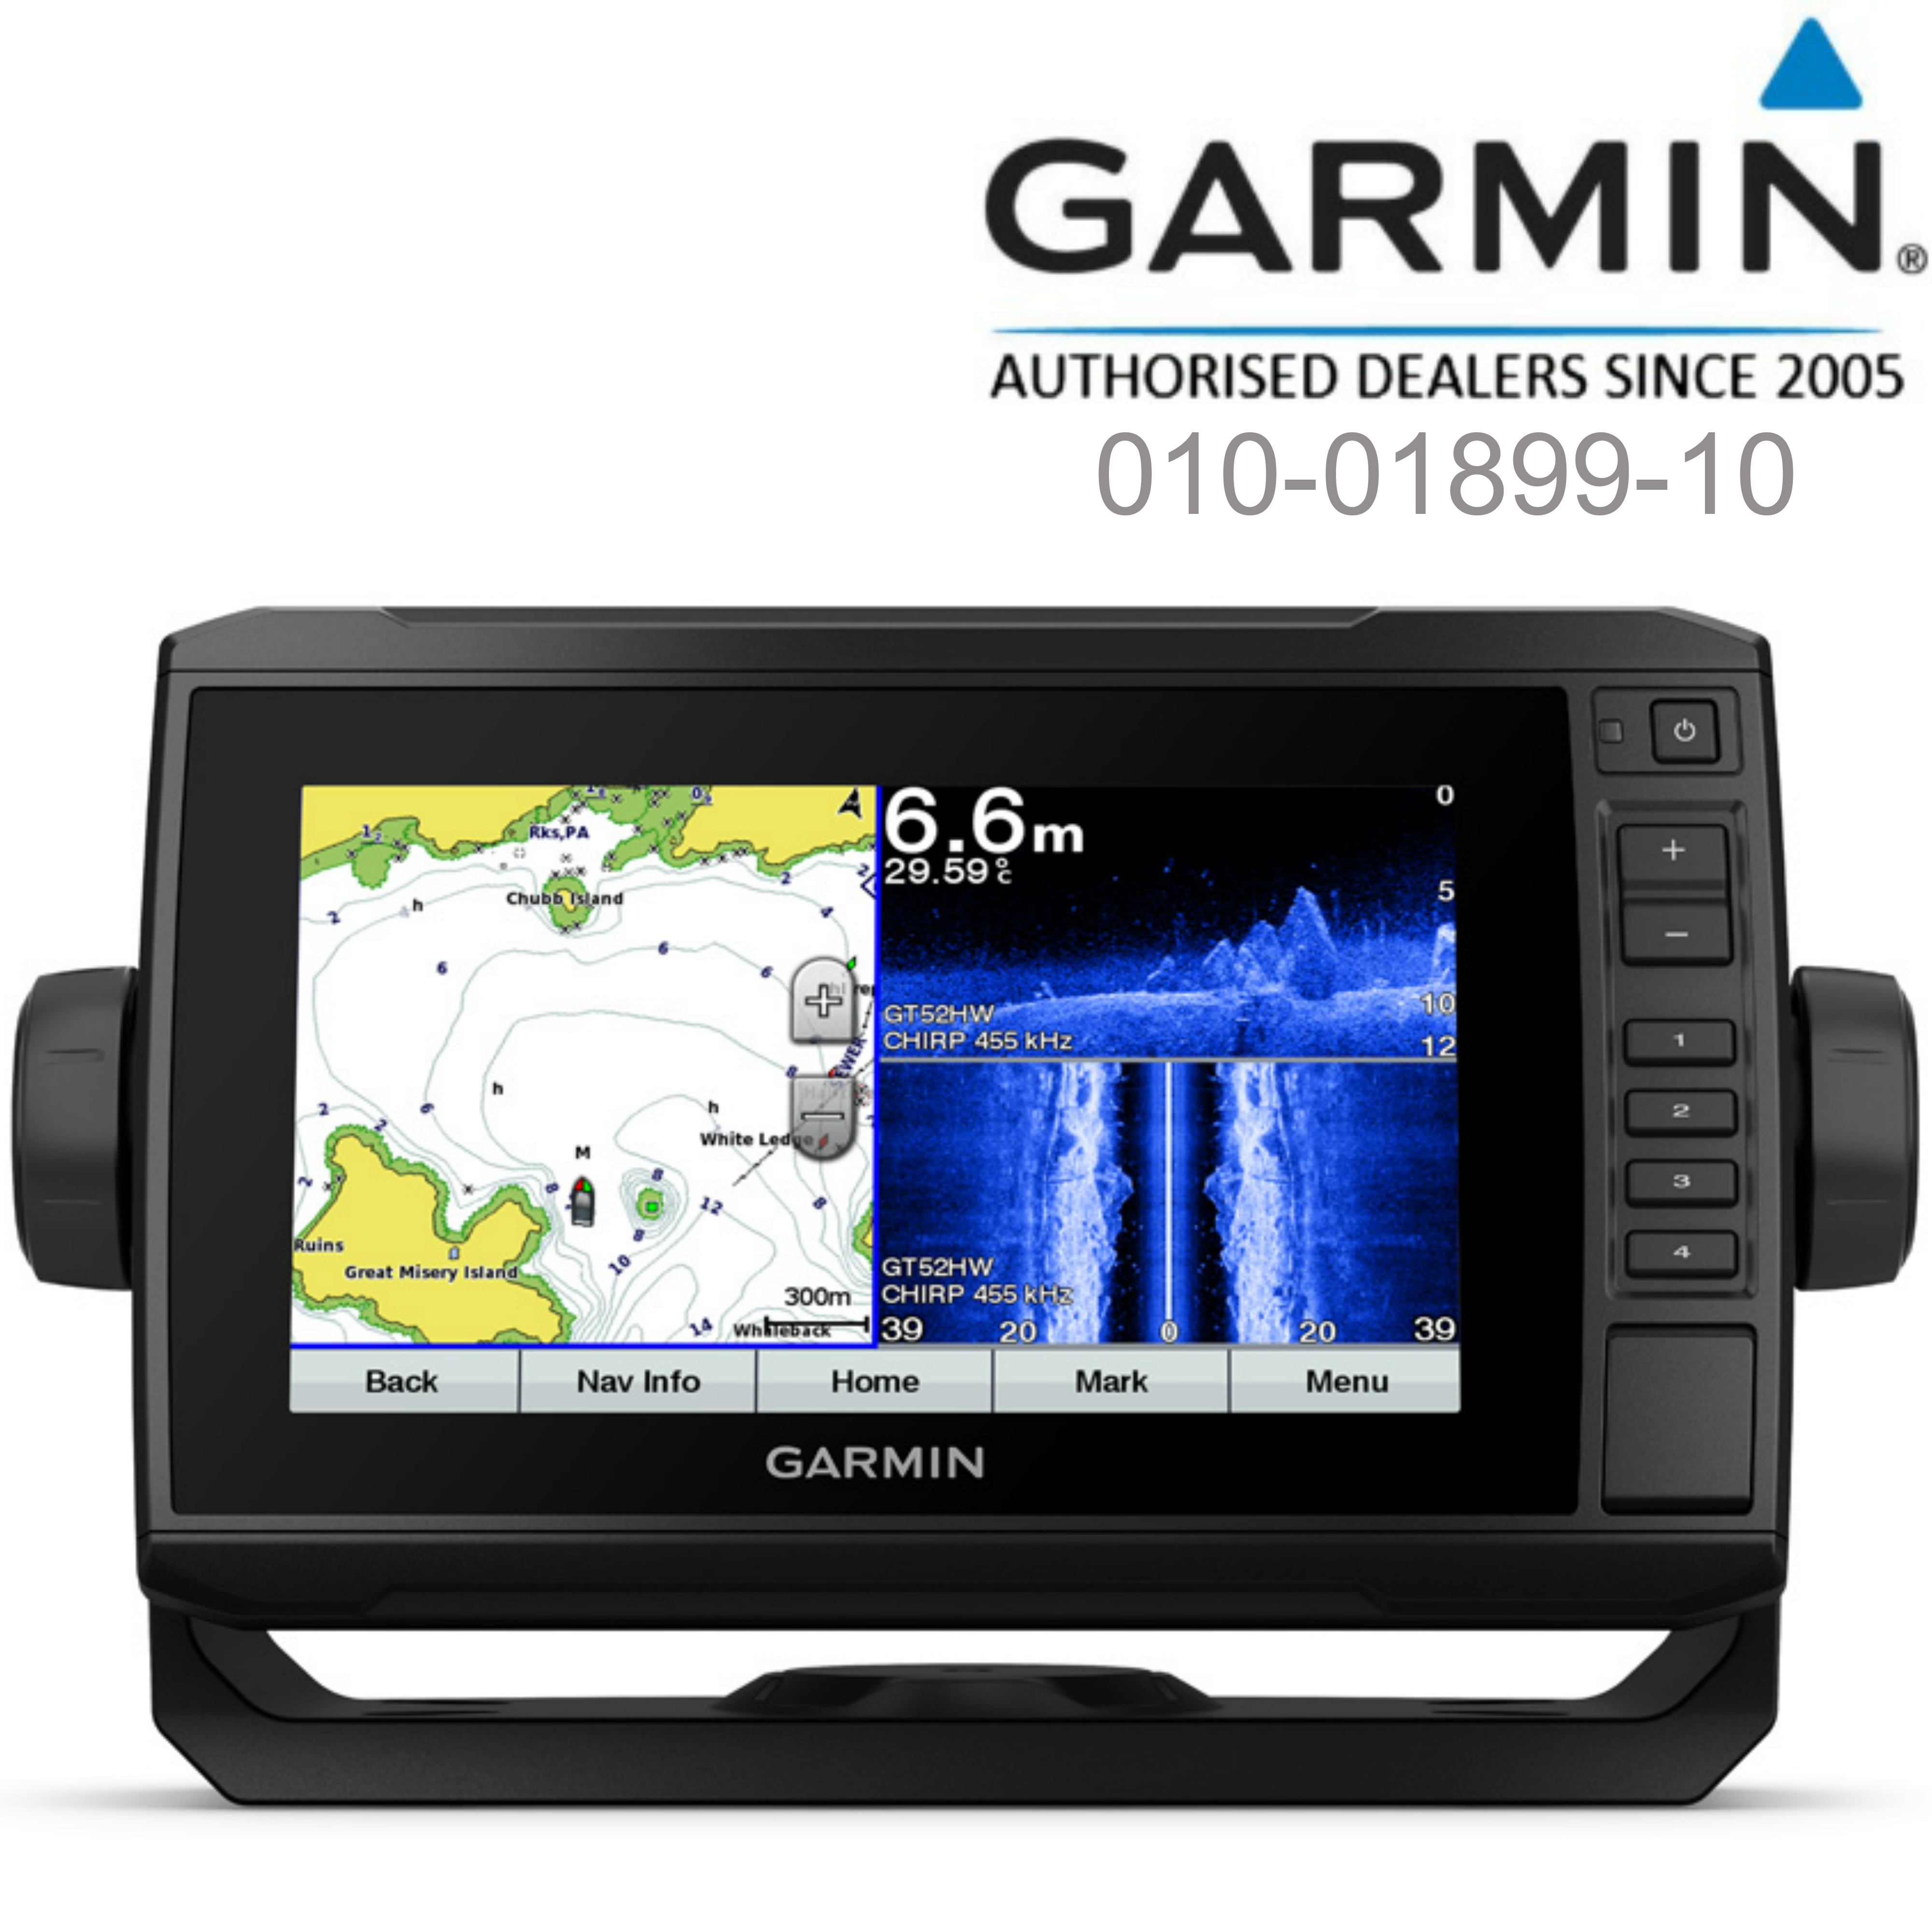 Garmin ECHOMAP Plus 75sv-7"